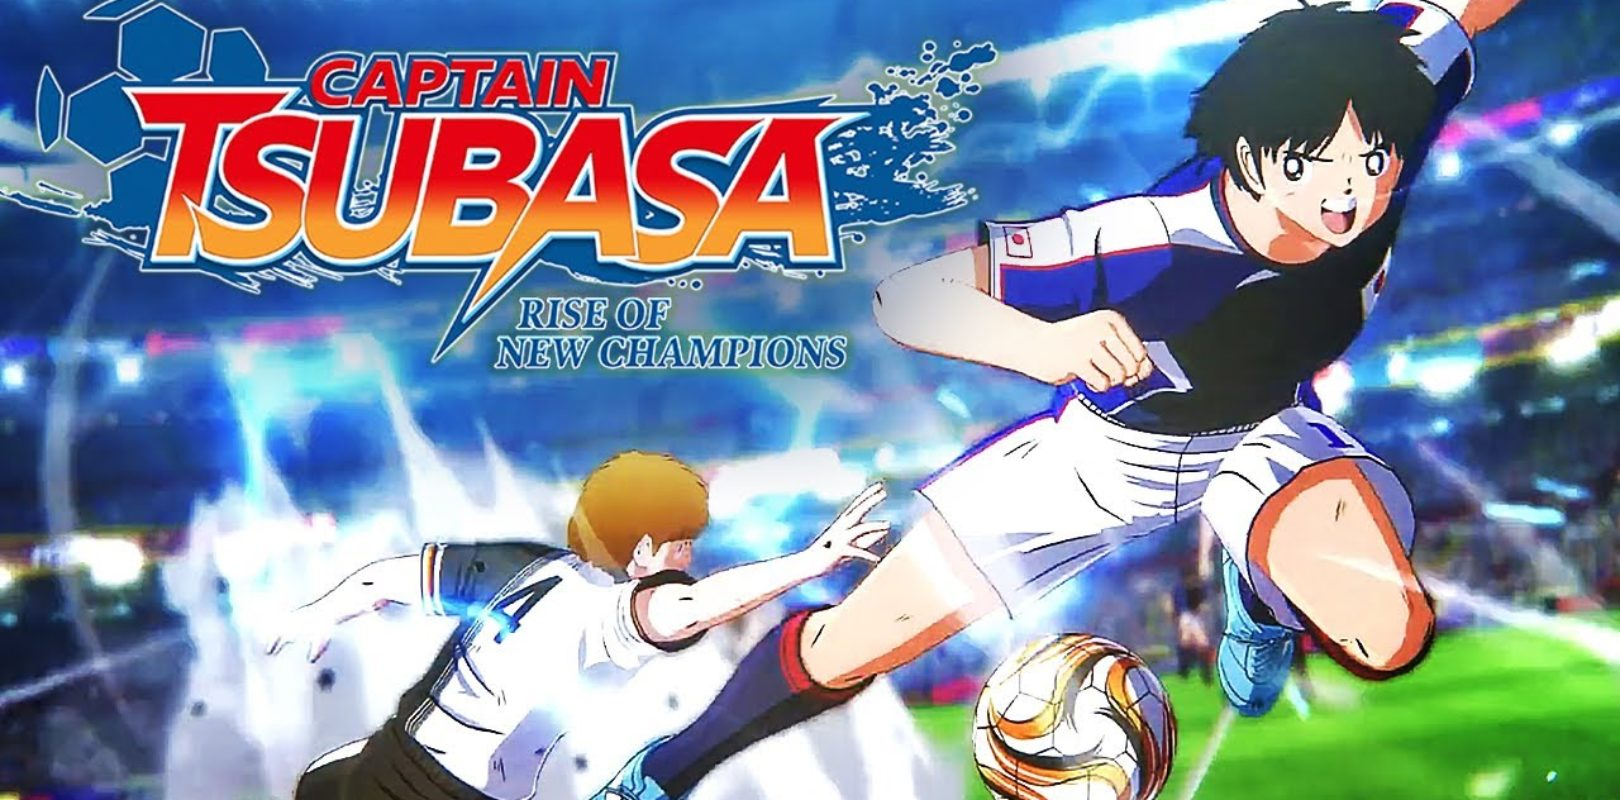 Captain-Tsubasa-Rise-of-New-Champions-montre-des-joueurs-Italie-Uruguay-Angleterre-00-1620x800